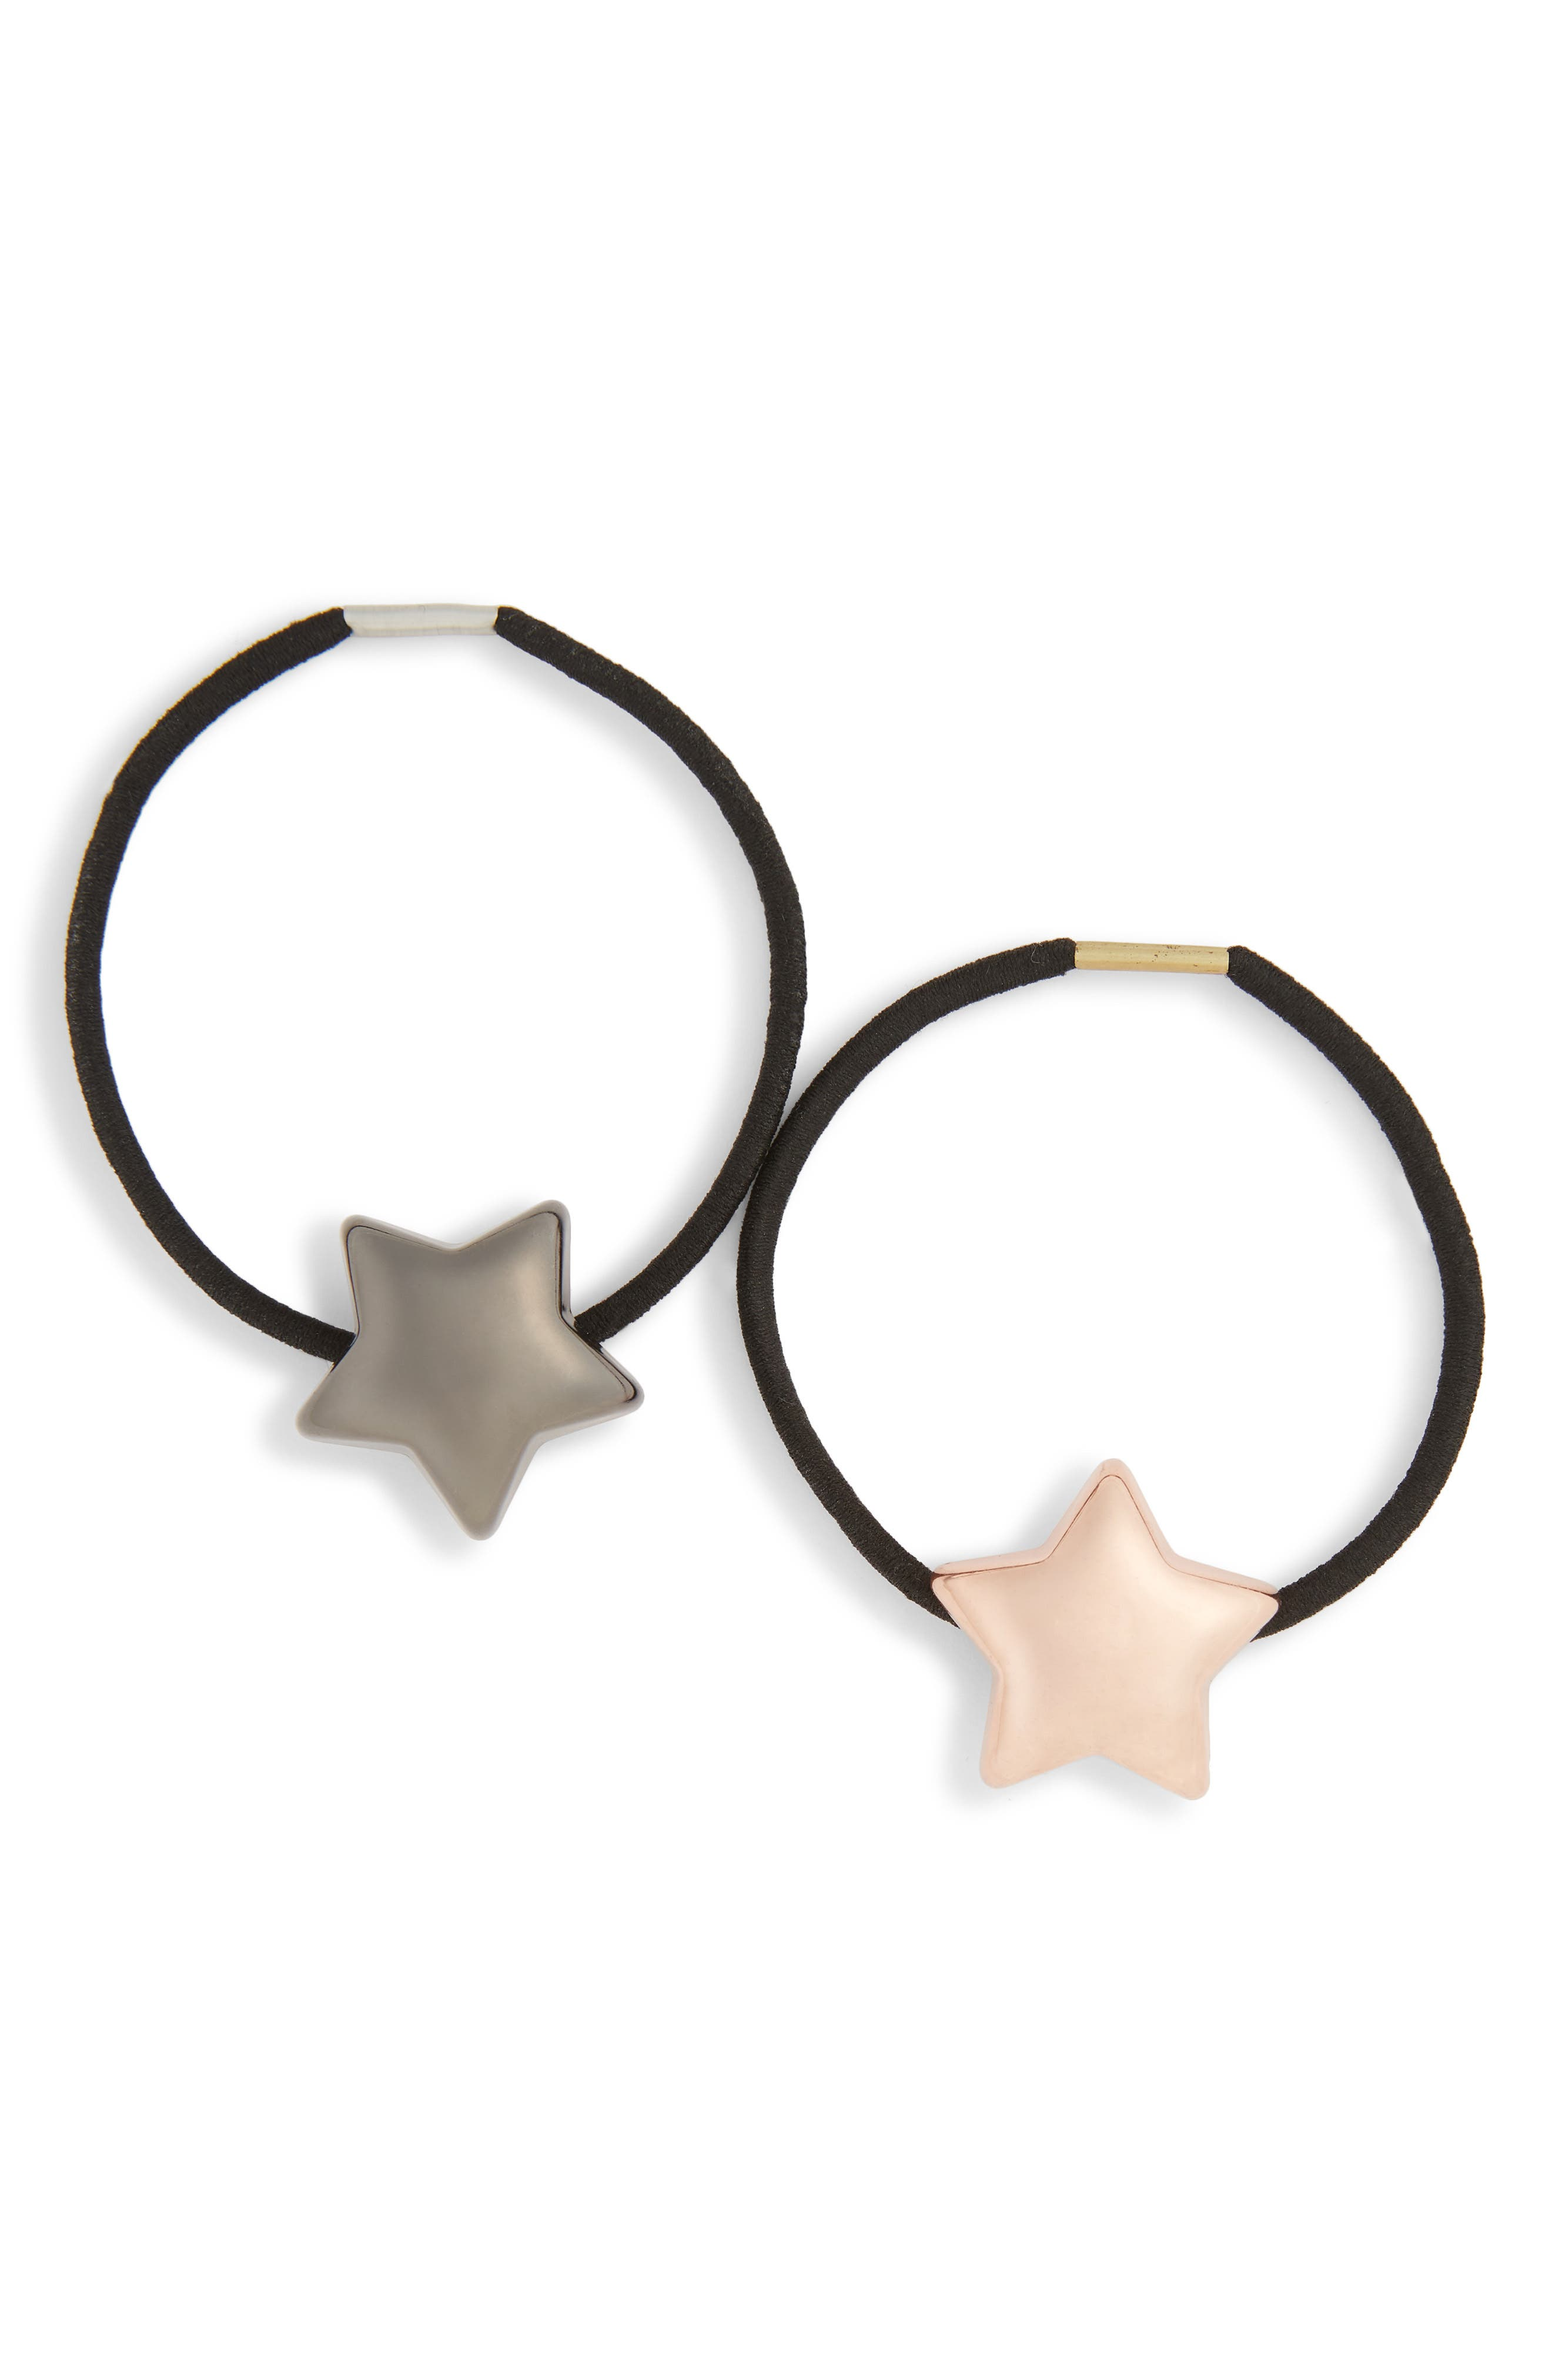 2-Pack Metal Star Ponytail Holders,                             Main thumbnail 1, color,                             ROSE GOLD/ BLACK